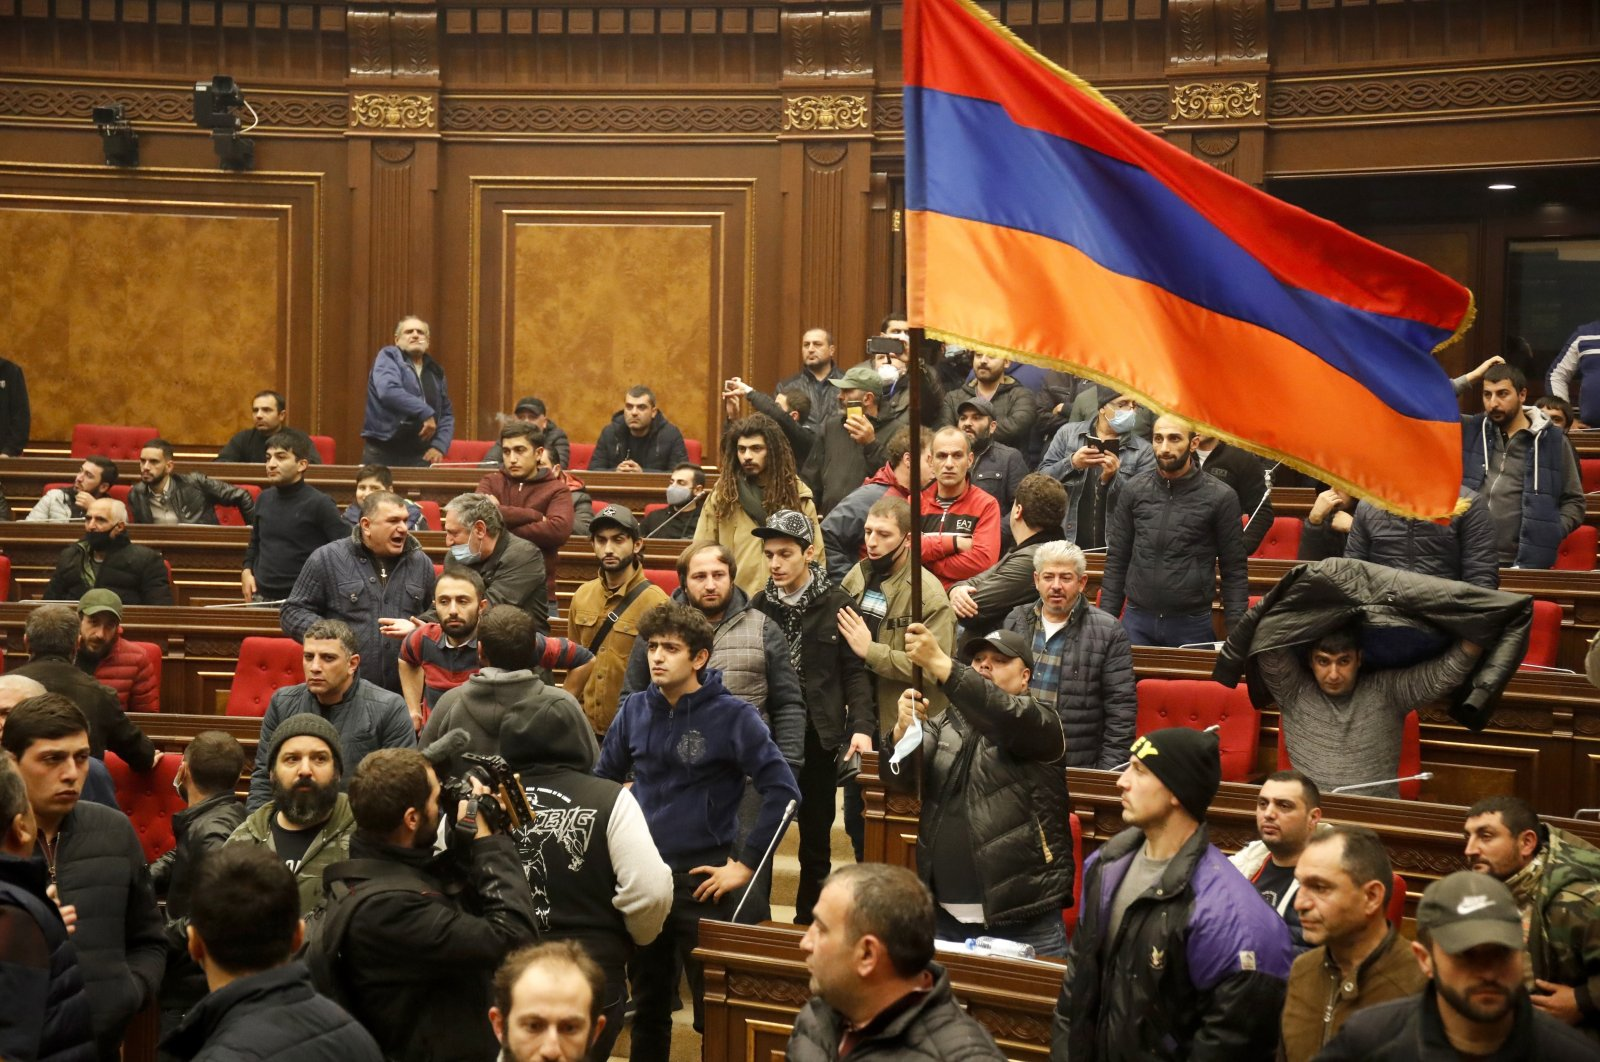 Demonstrators wave an Armenian flag in protest against a peace deal over the Nagorno-Karabakh region, at the national parliament building in Yerevan, Armenia, Tuesday, Nov. 10, 2020. (AP Photo)